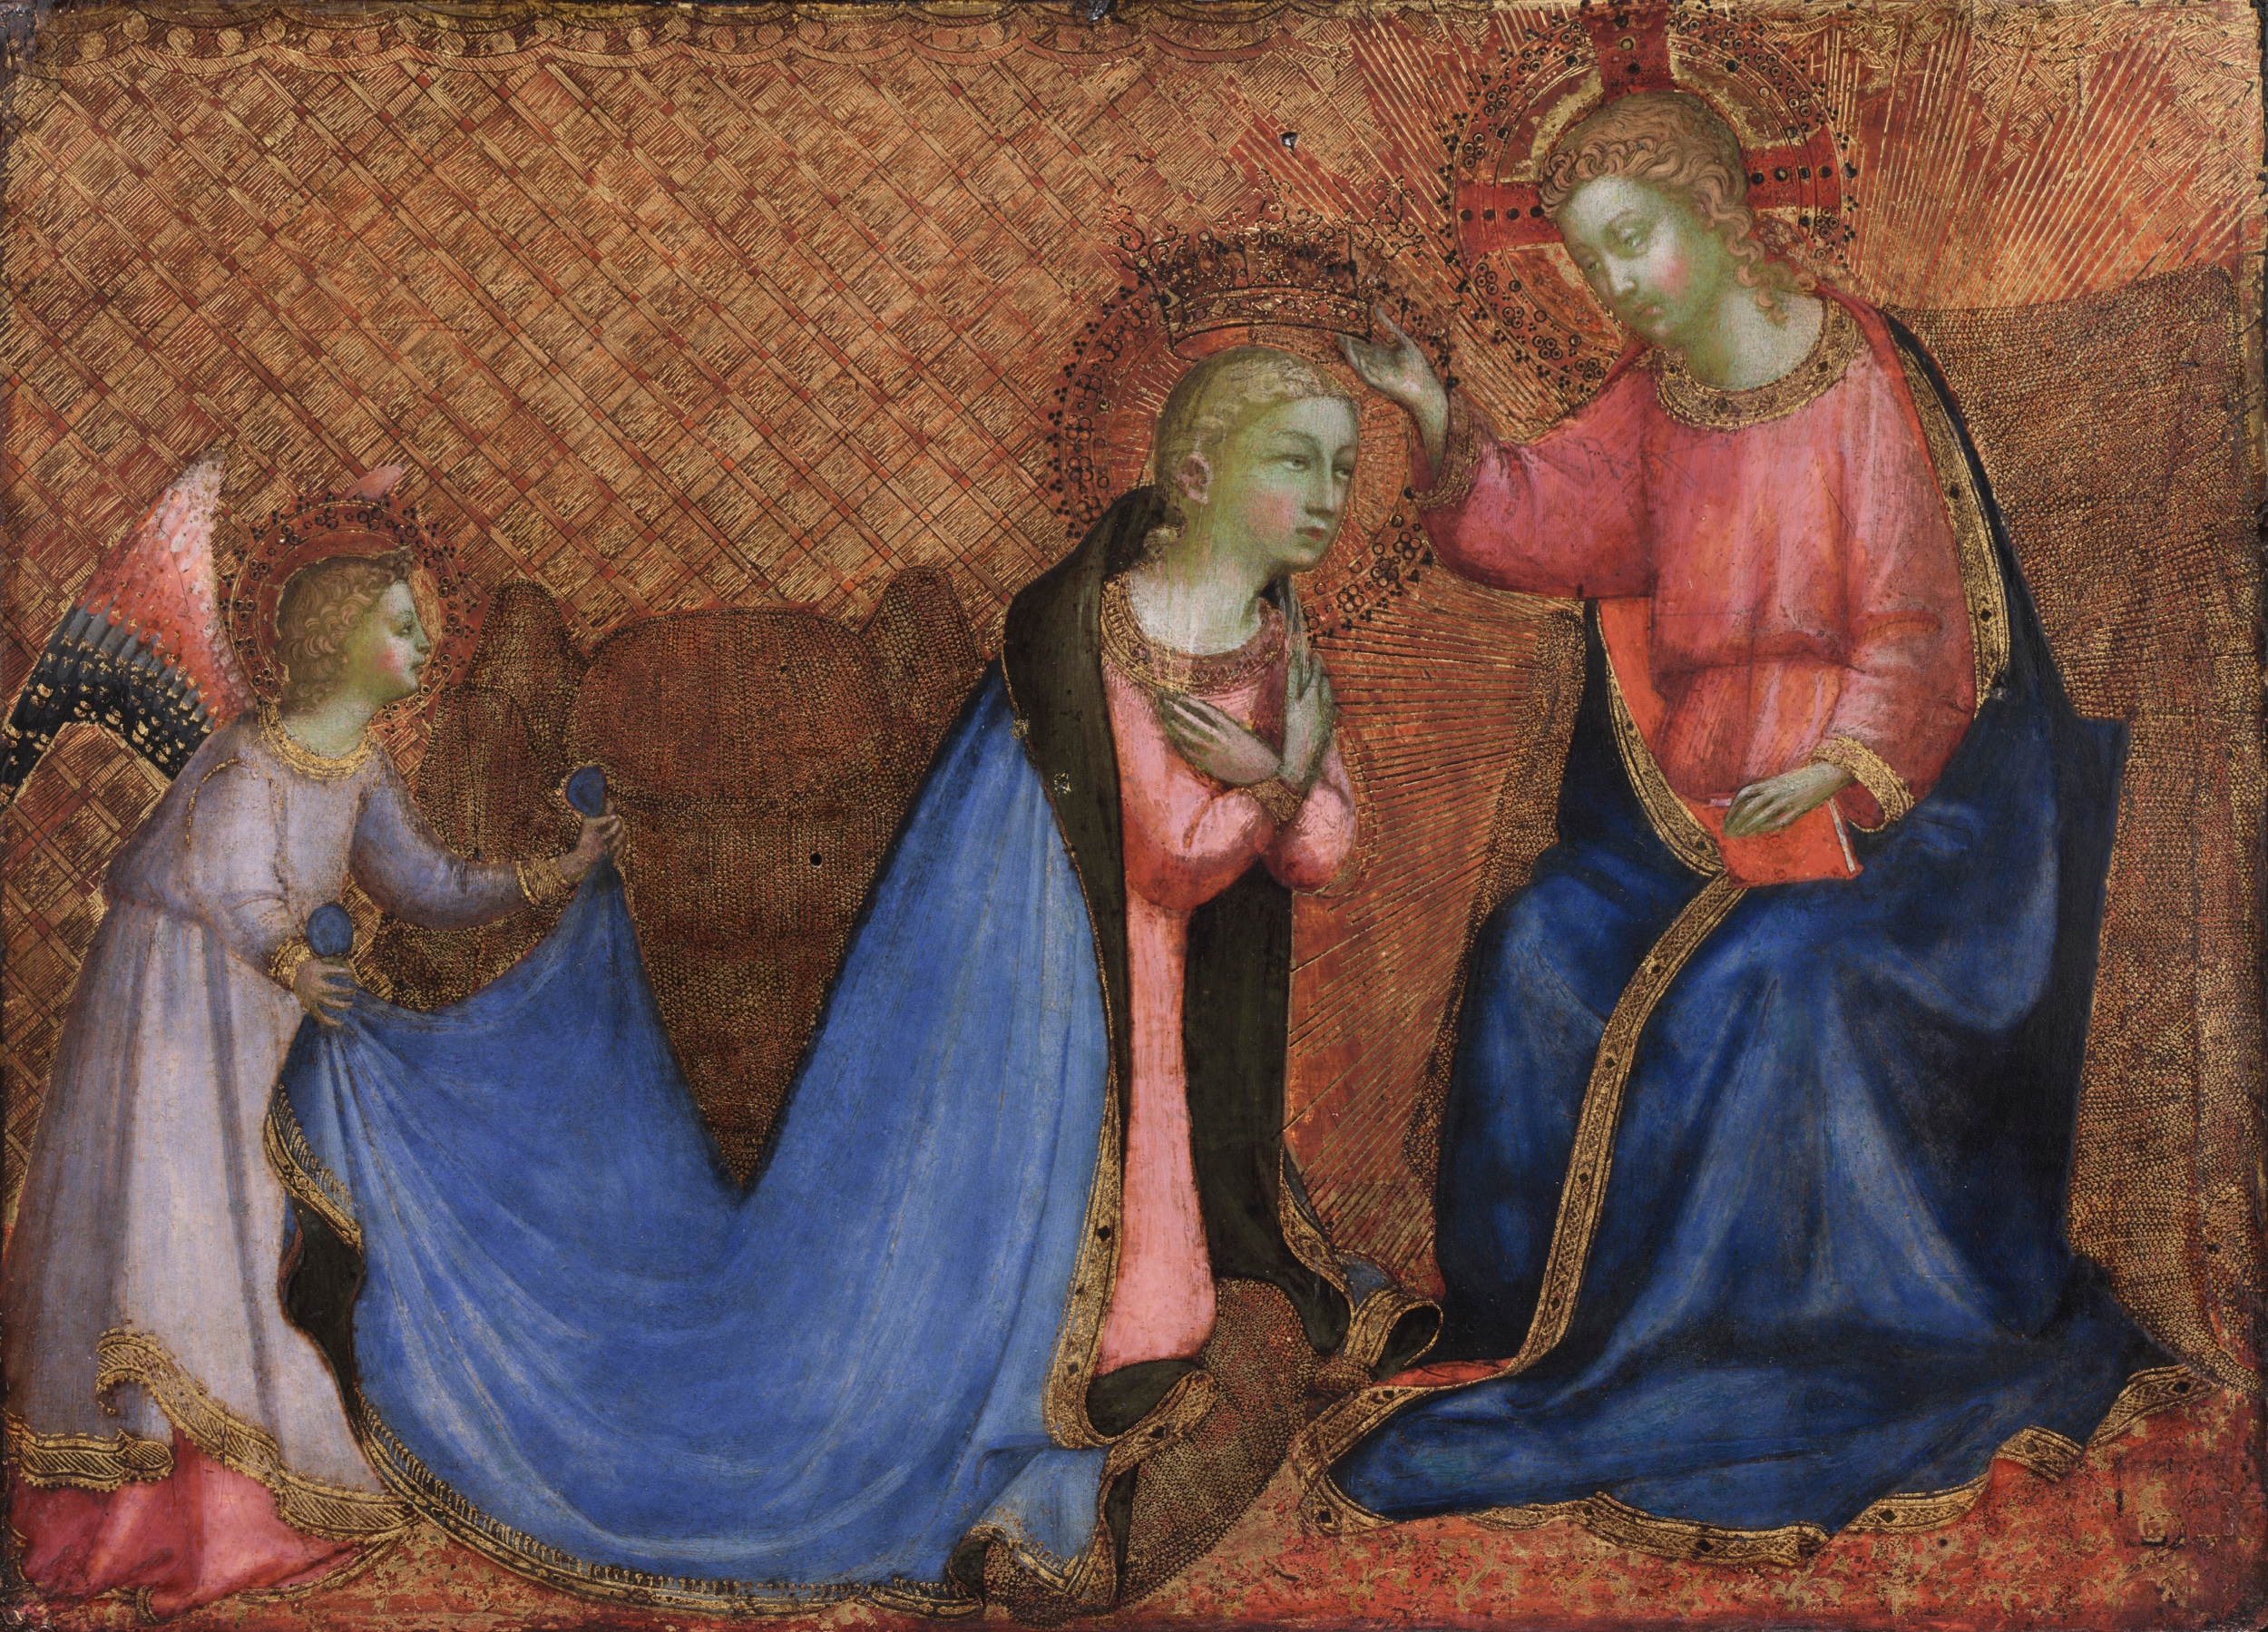 Coronation of the Virgin by Fra Angelico. Date: 1420. This work of art is in the public domain.